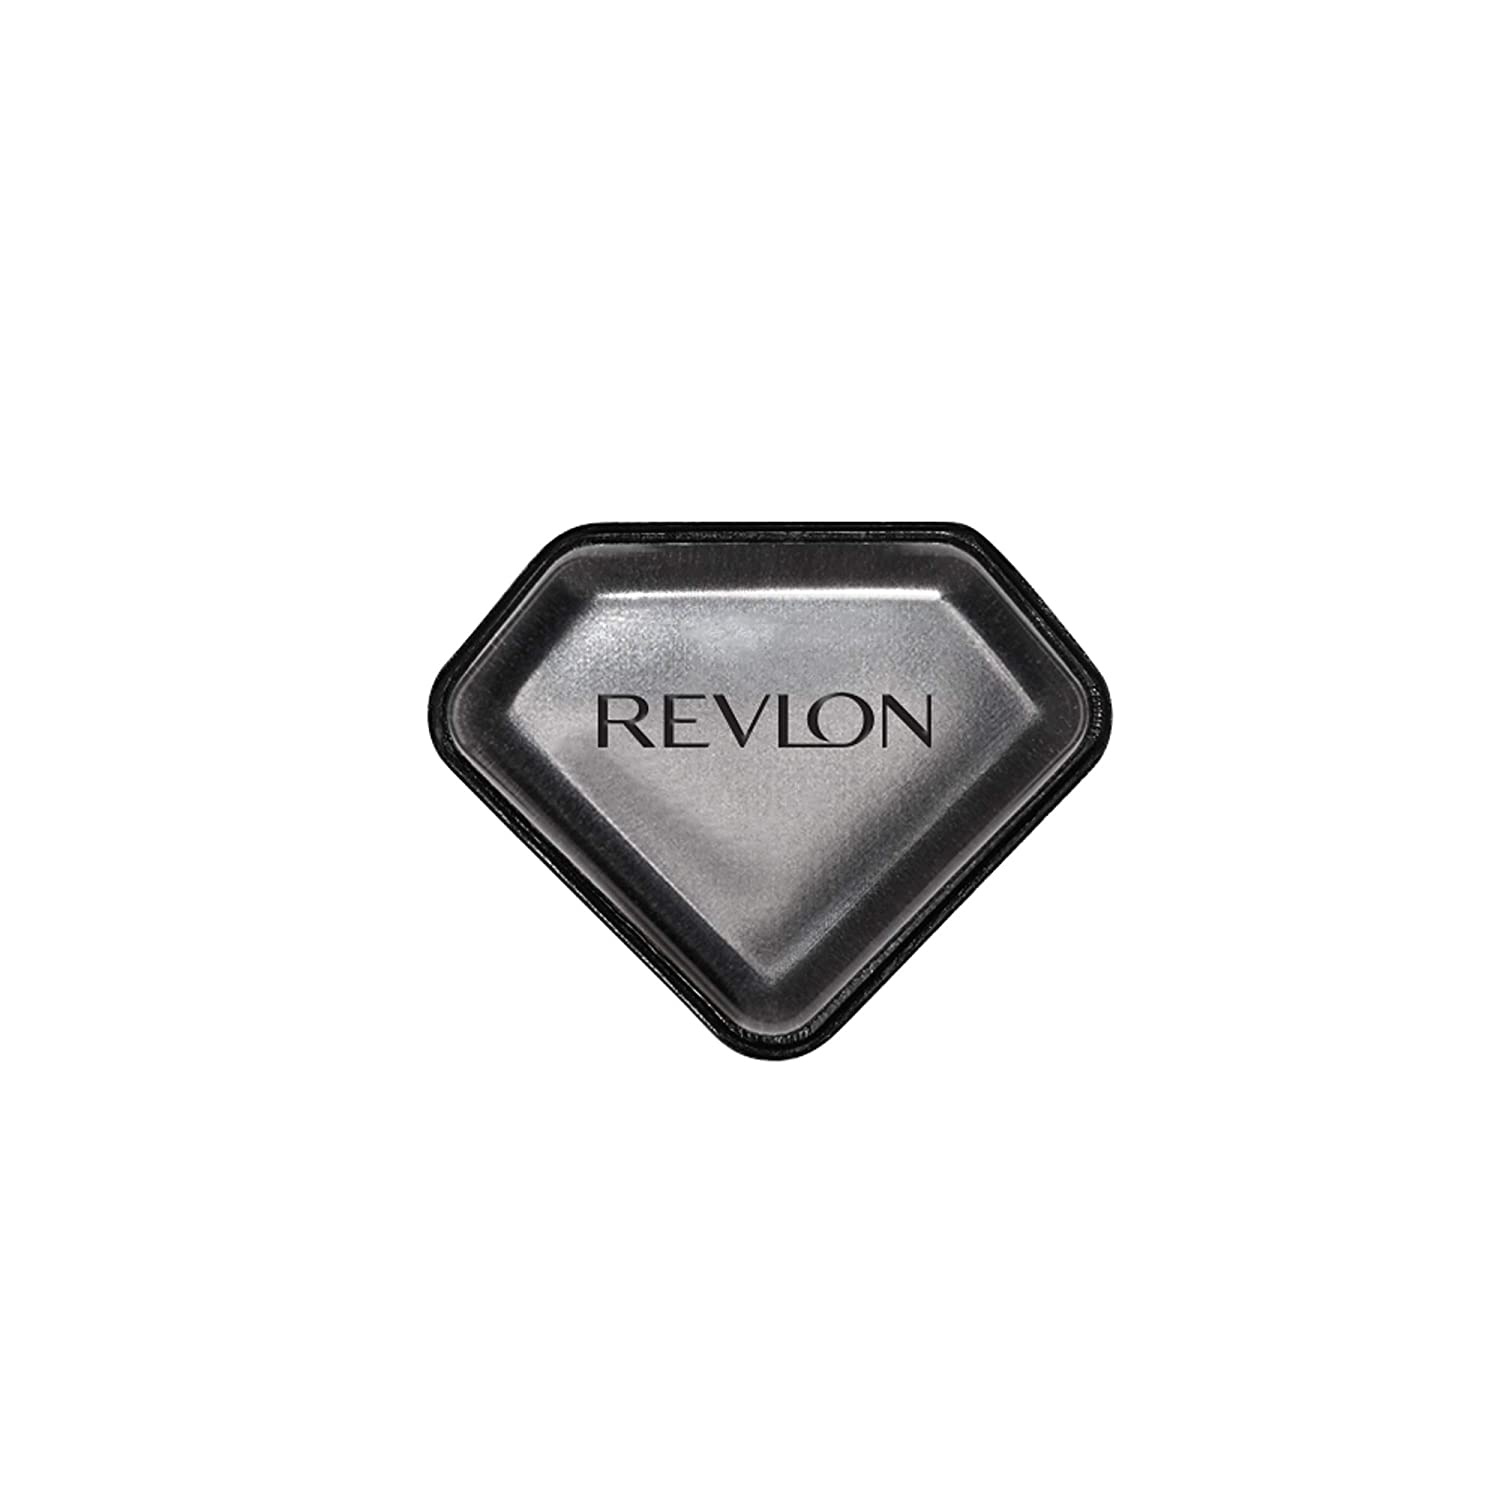 Revlon Duo Silicone Sponge, Dual Sided Silicone and Velvet Makeup Blender for Liquid and Cream Foundation, Latex Free